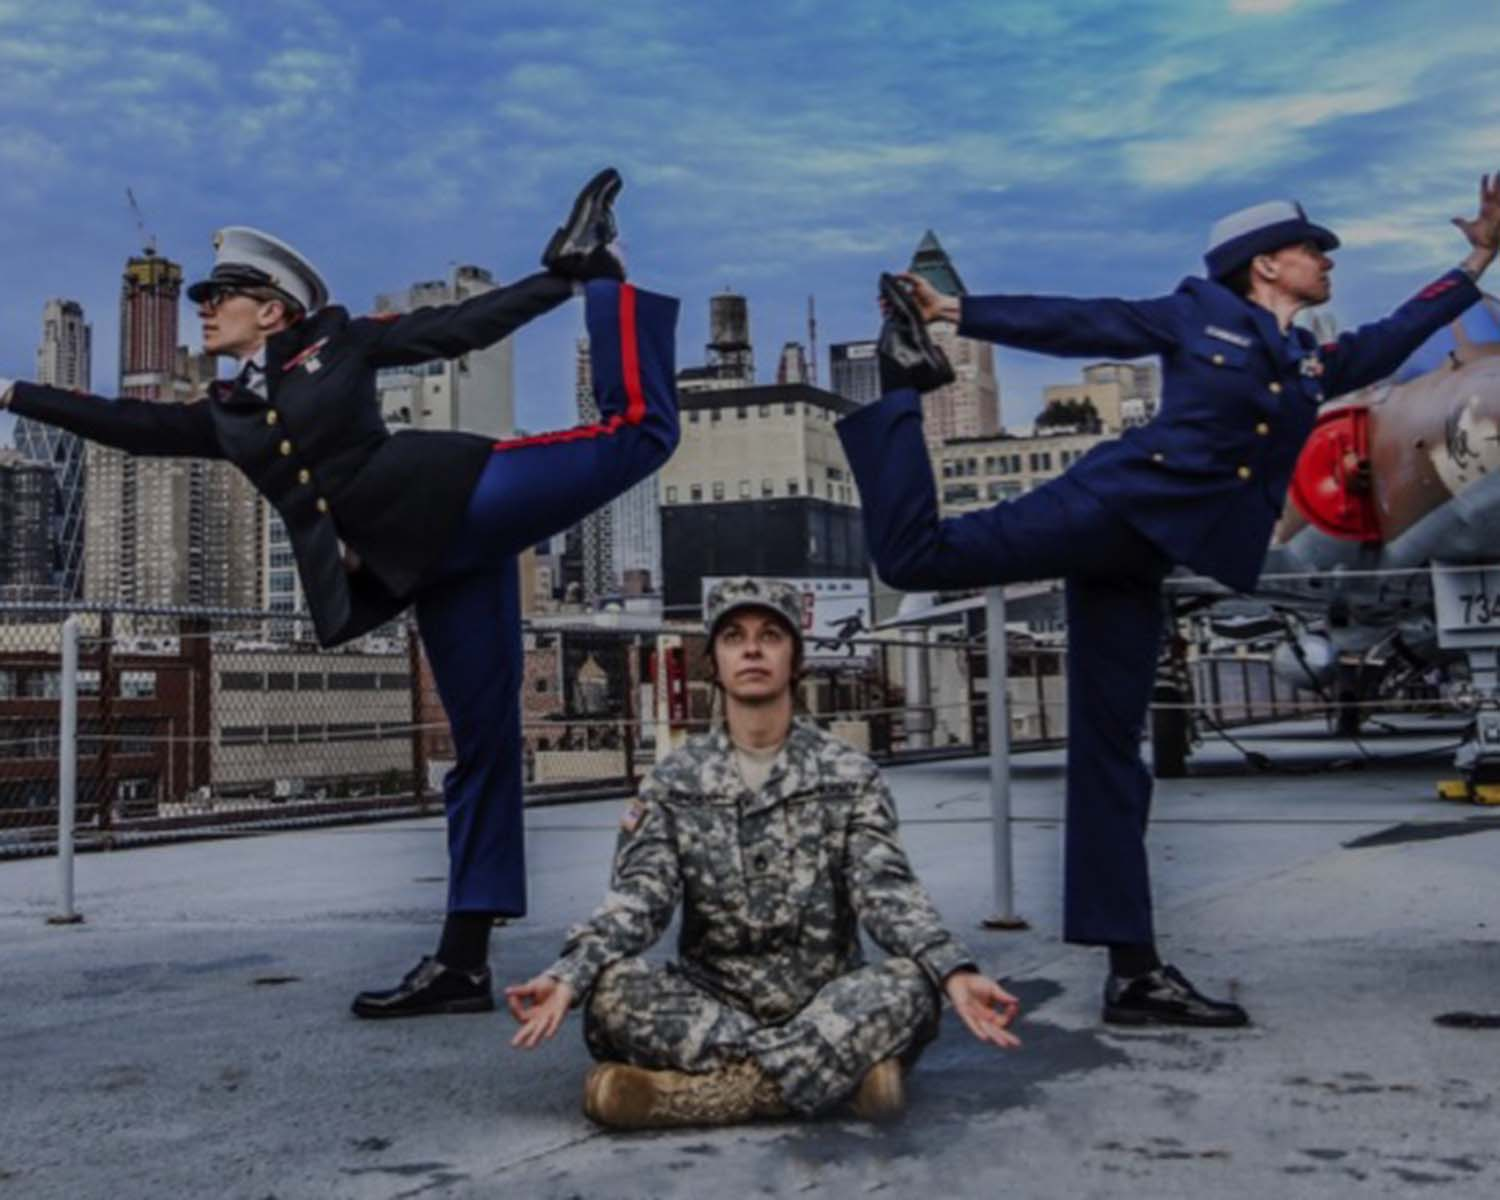 Image cred to Veteran's Yoga Project